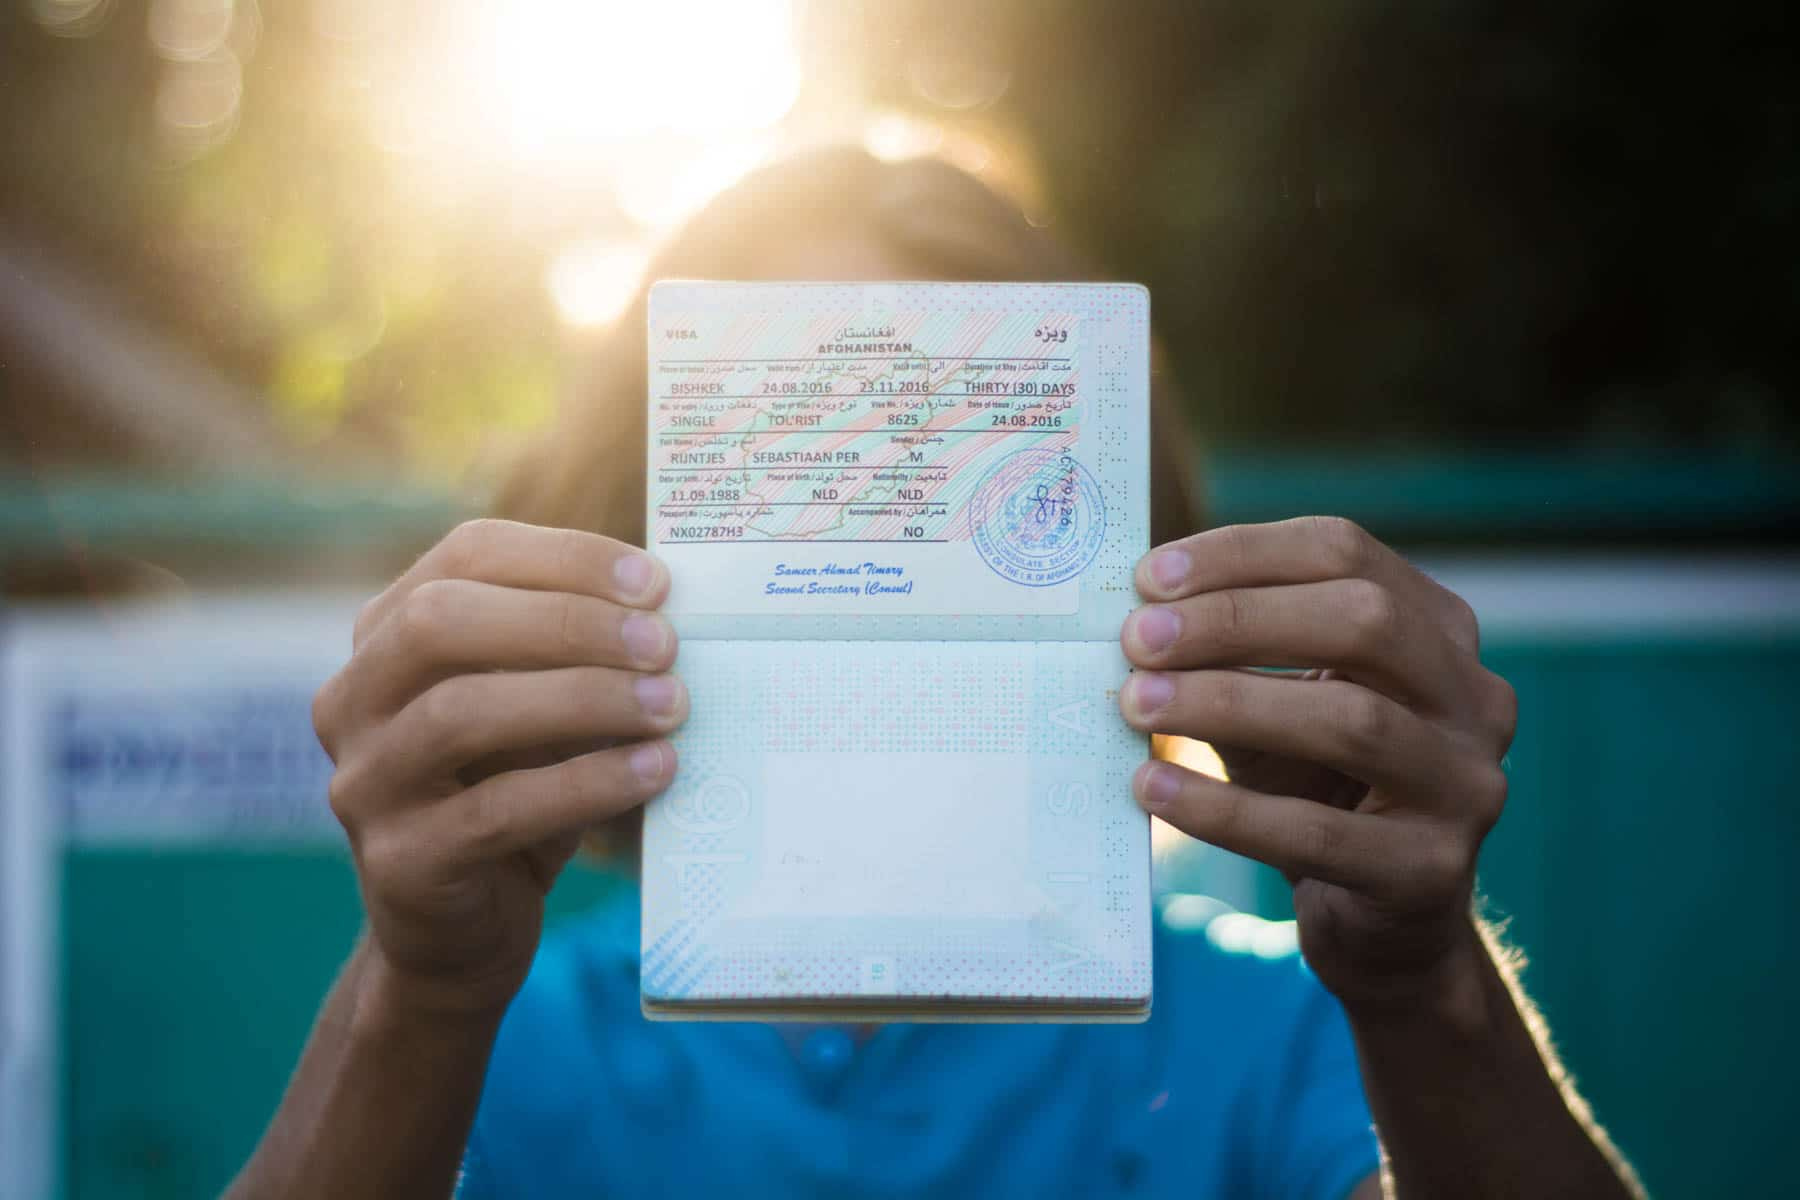 Applying for an Afghanistan visa - Lost With Purpose